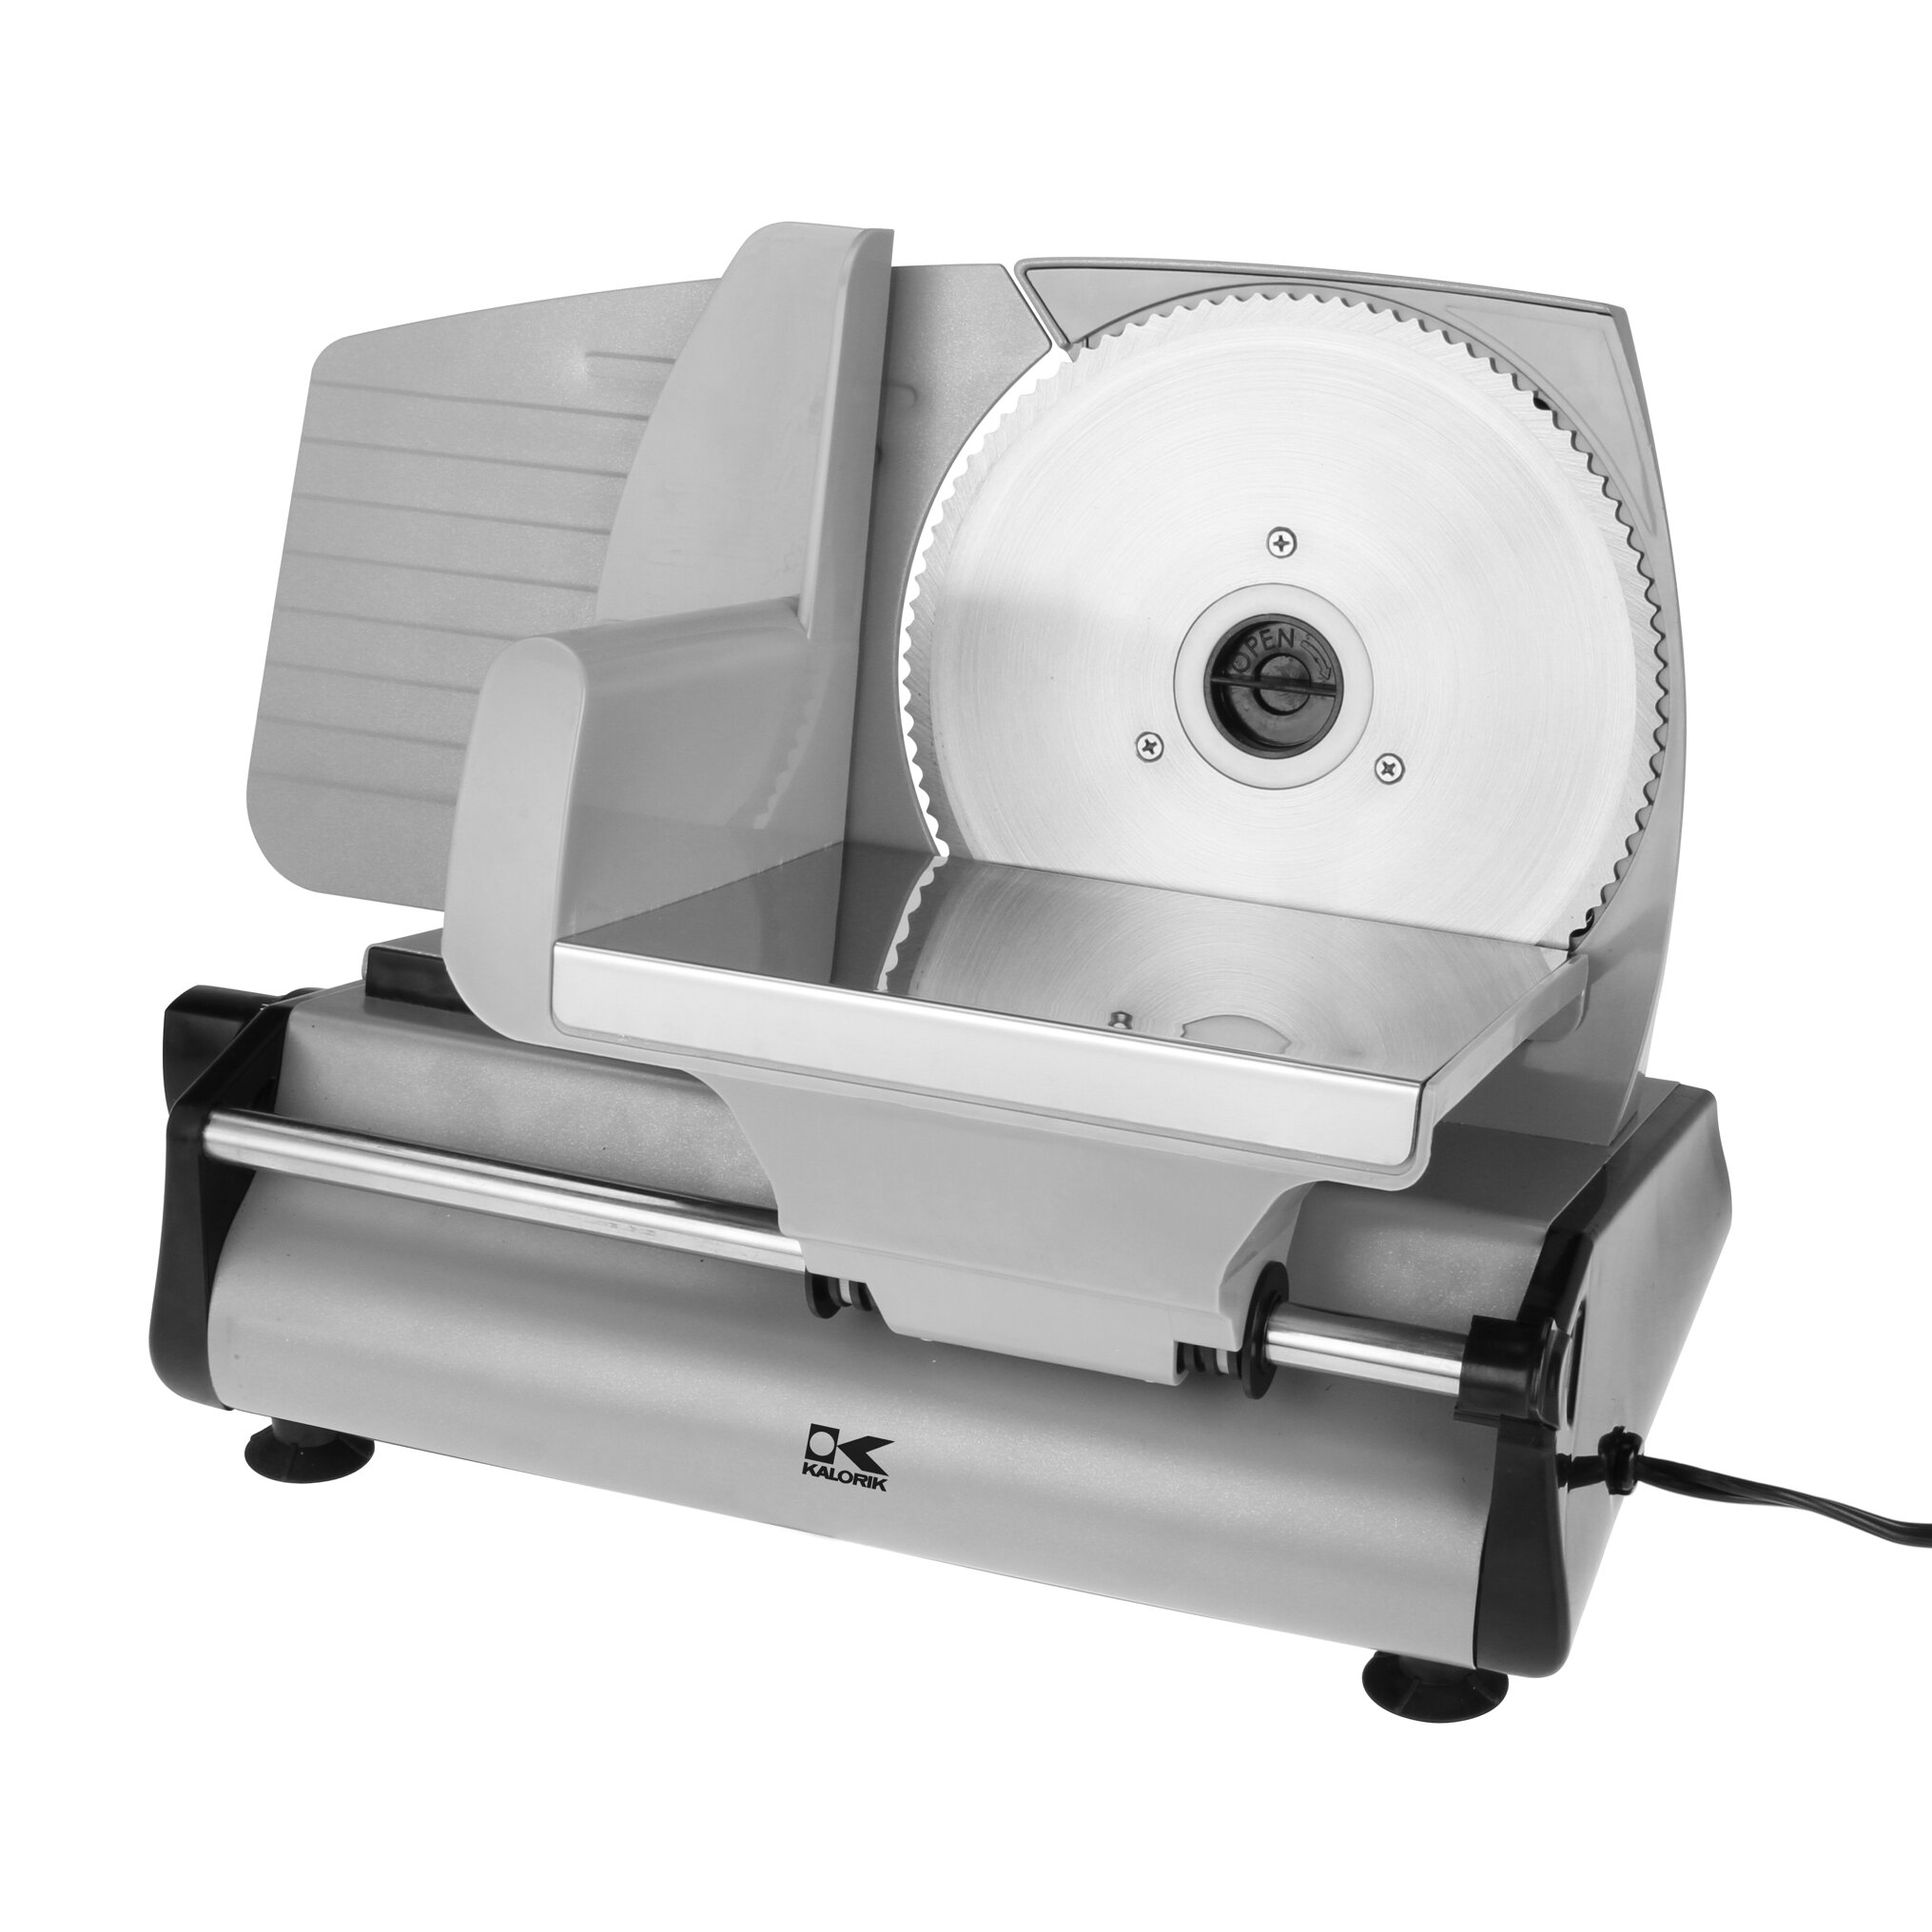 Kalorik Professional Style Food Slicer & Reviews | Wayfair